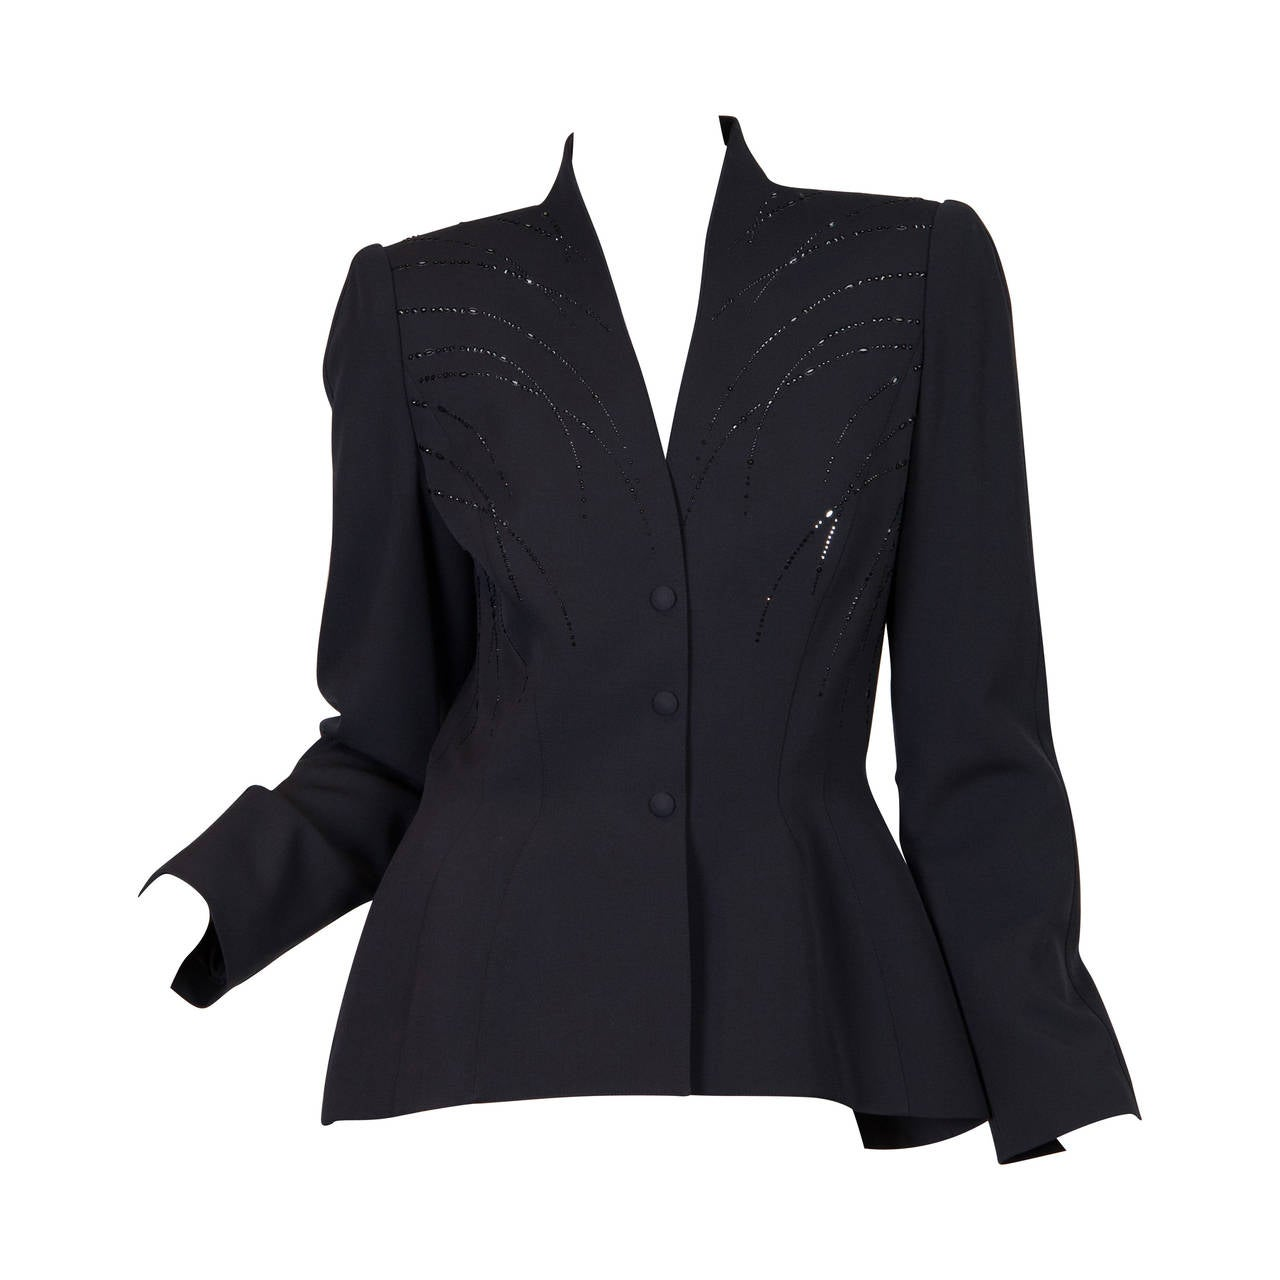 1980s Thierry Mugler Jacket with Crystals For Sale